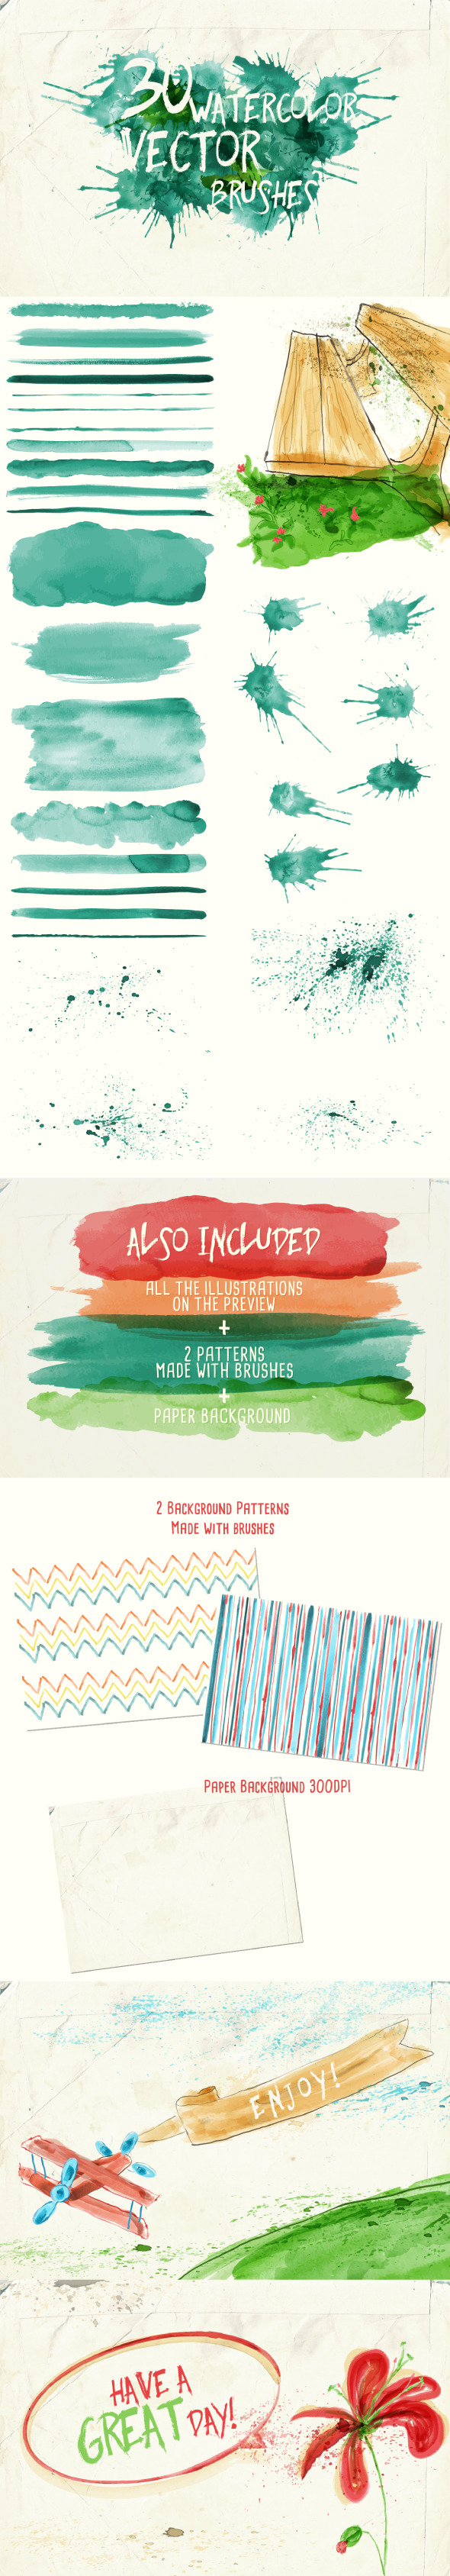 GraphicRiver Watercolor Vector Art Brushes 9845118